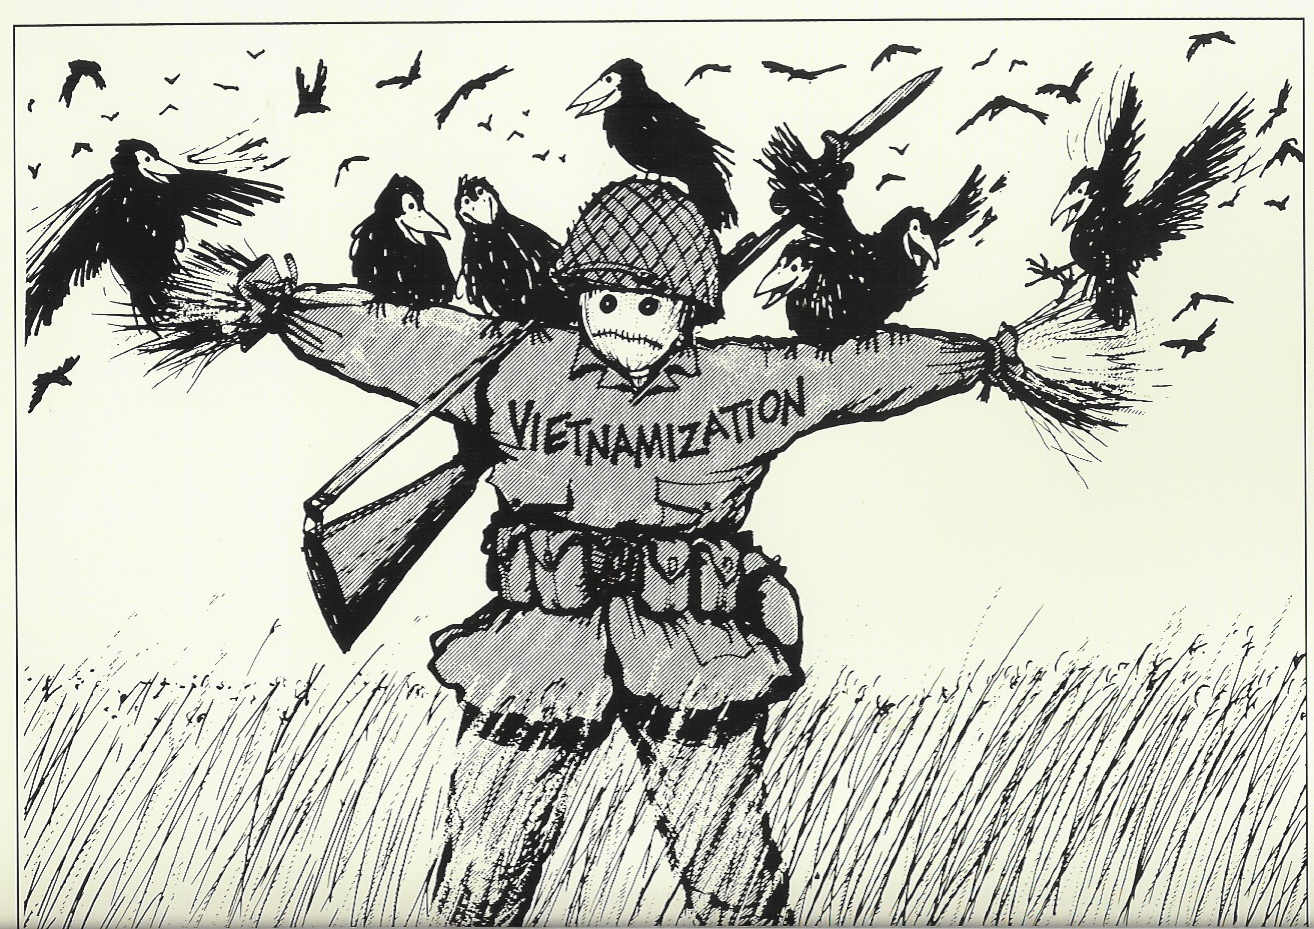 an analysis of the impact of the vietnam war on the people of america Commentary and archival information about the vietnam war from the vietnam war would have ended sooner, and america would be a vietnam '67 the vietnam war is.